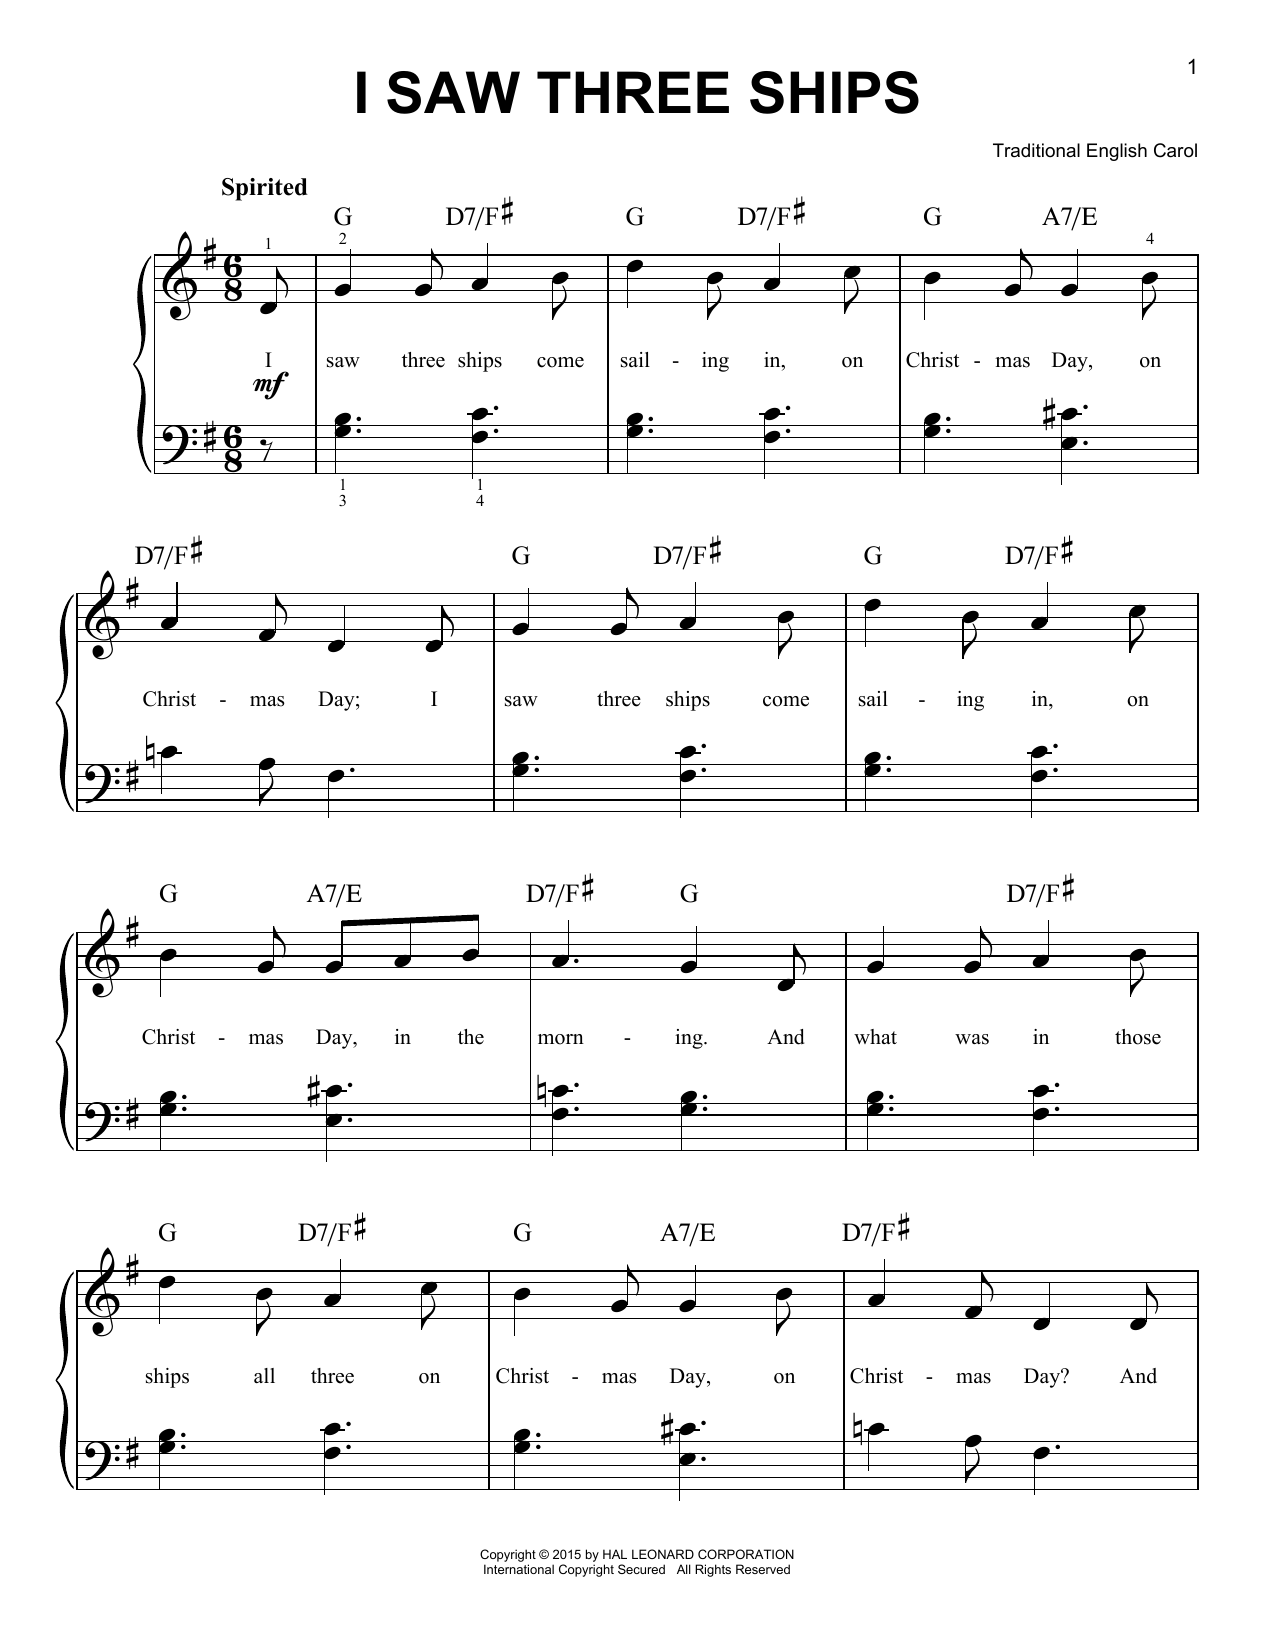 Traditional I Saw Three Ships sheet music notes and chords. Download Printable PDF.